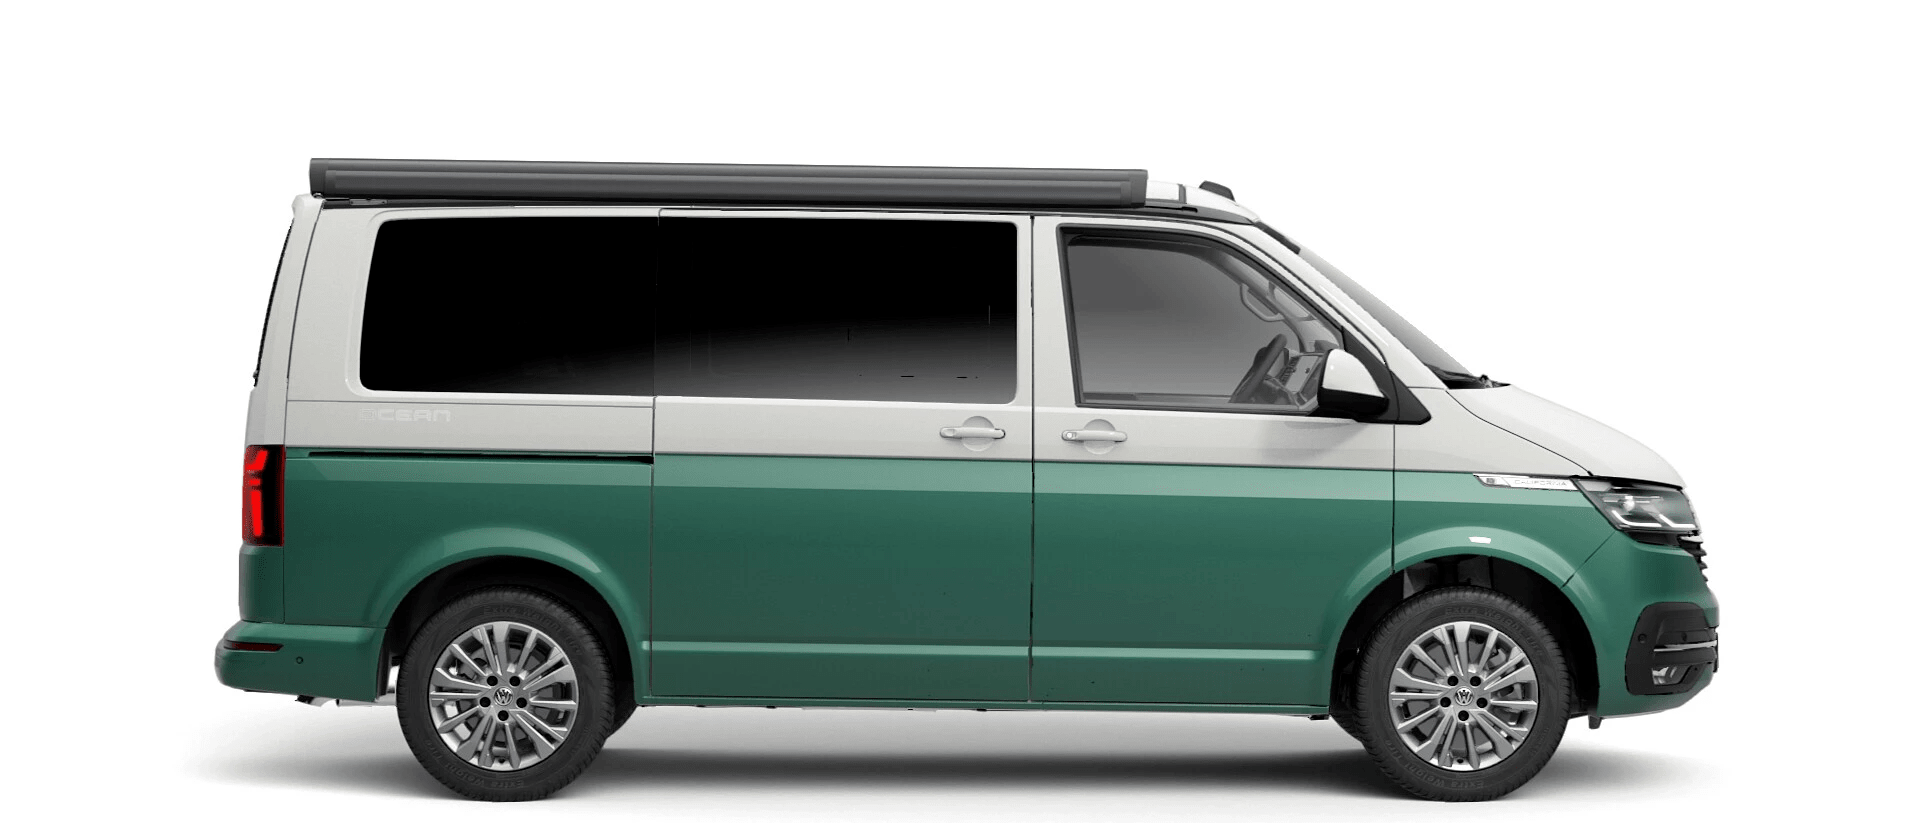 Volkswagen Van Range California - Available In Two Tone Candy White & Metallic Bay Leaf Green